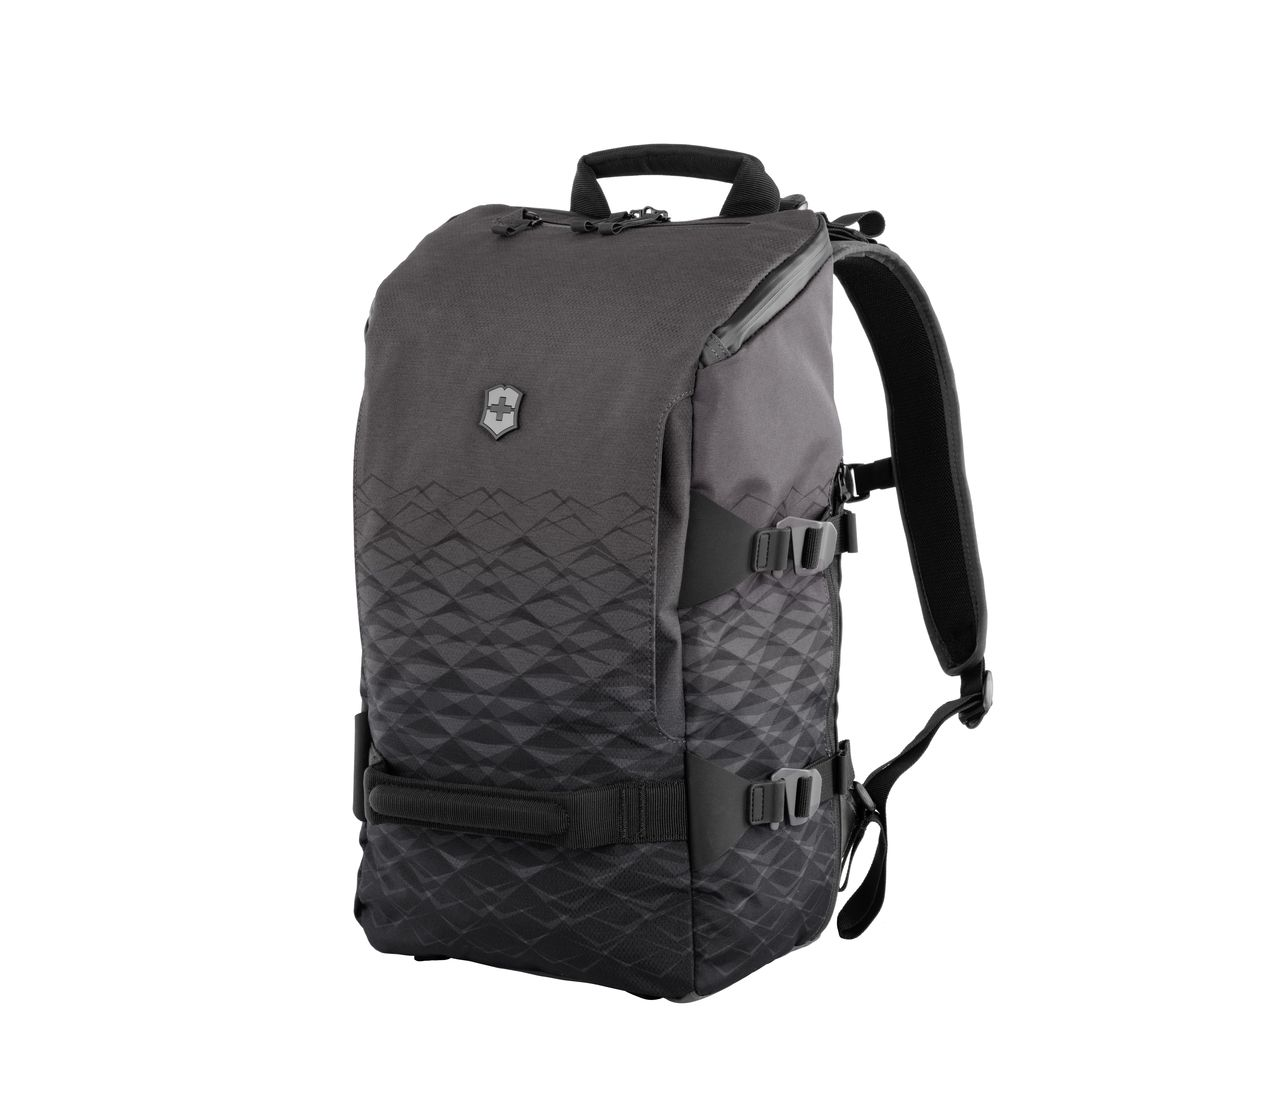 Vx Touring Backpack-601488